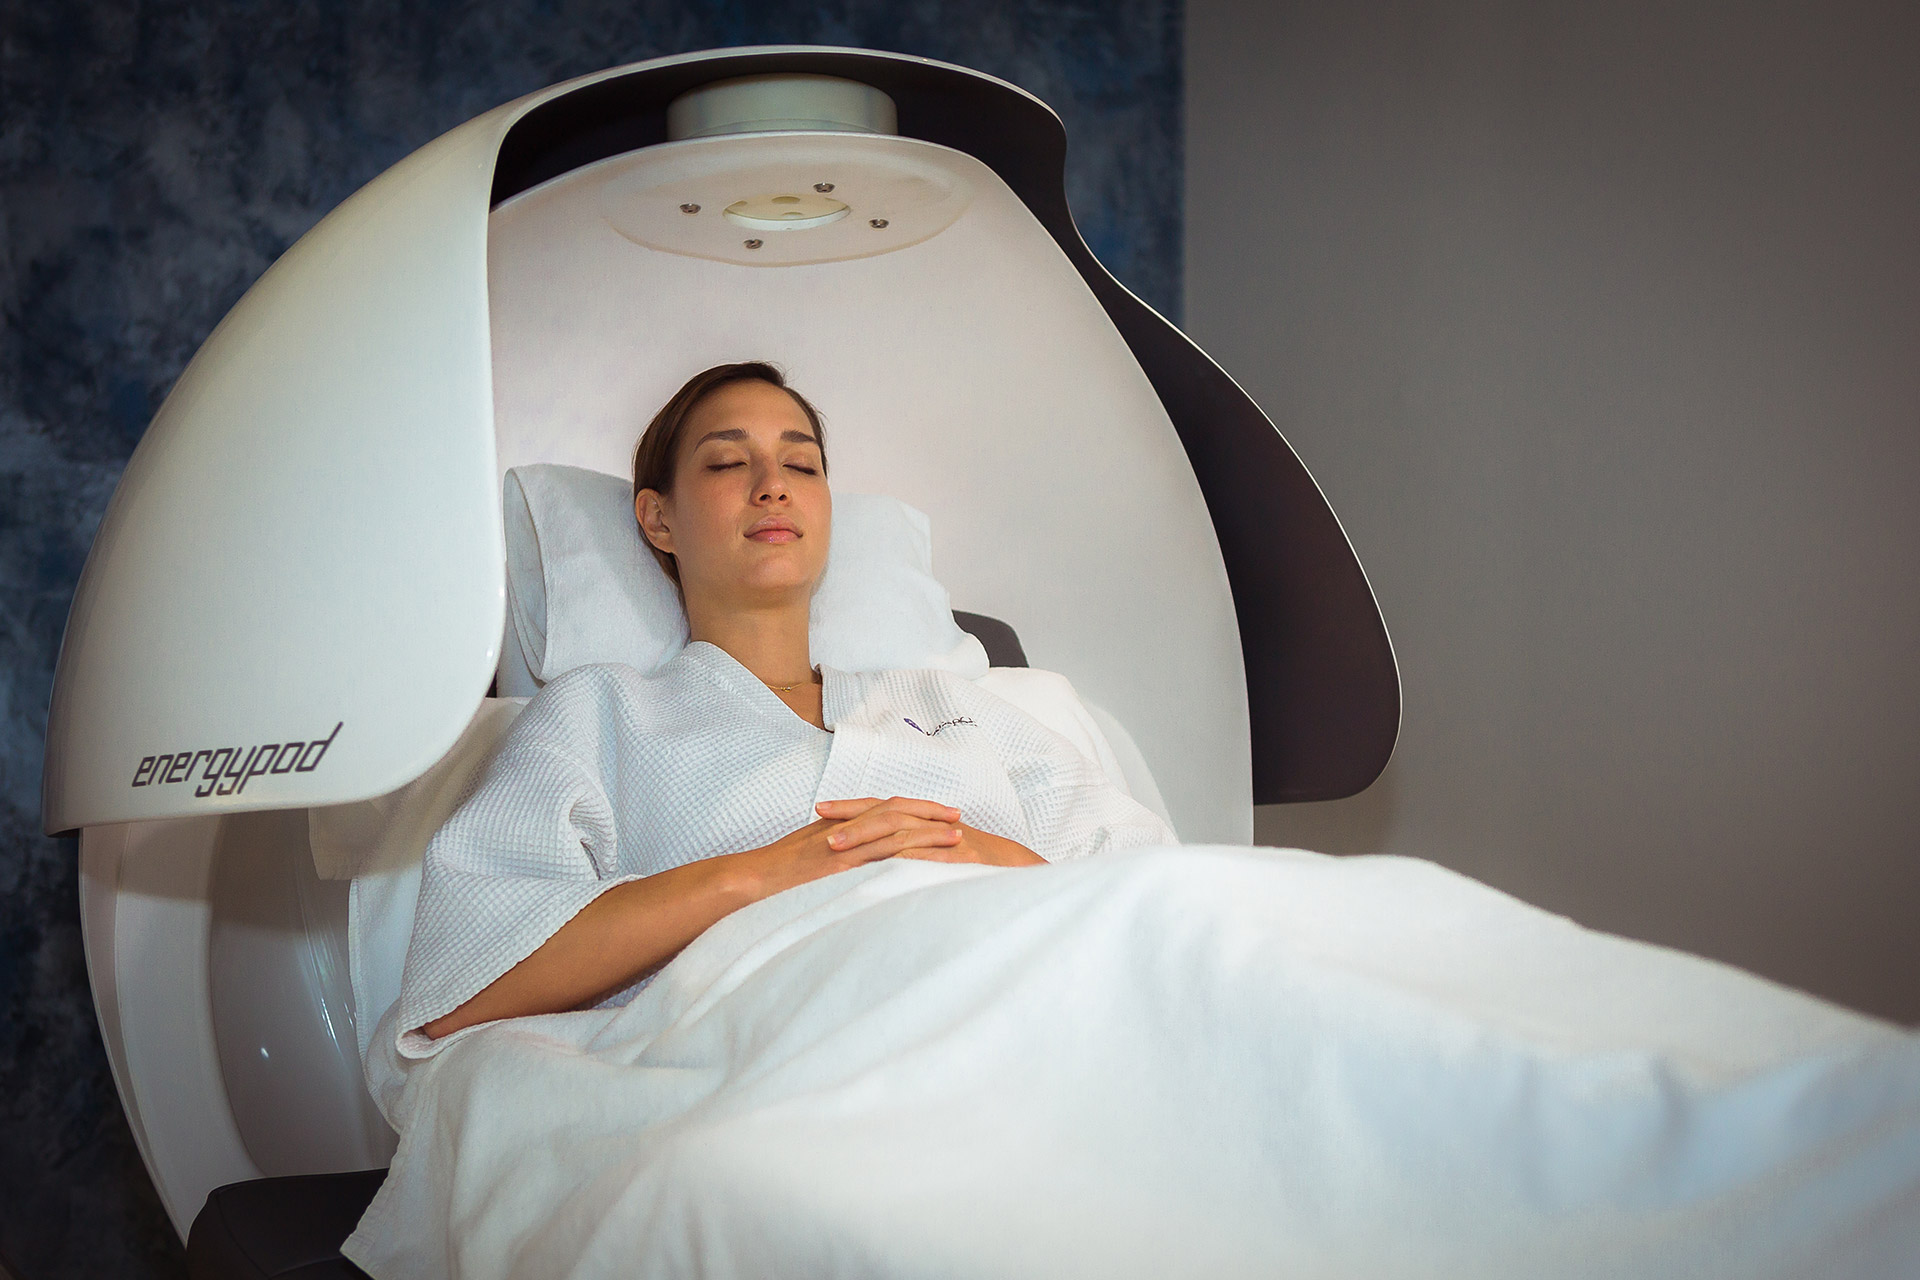 Ultimate Jet Lag Relief with Infinite Luxury Spa's Energy Pod